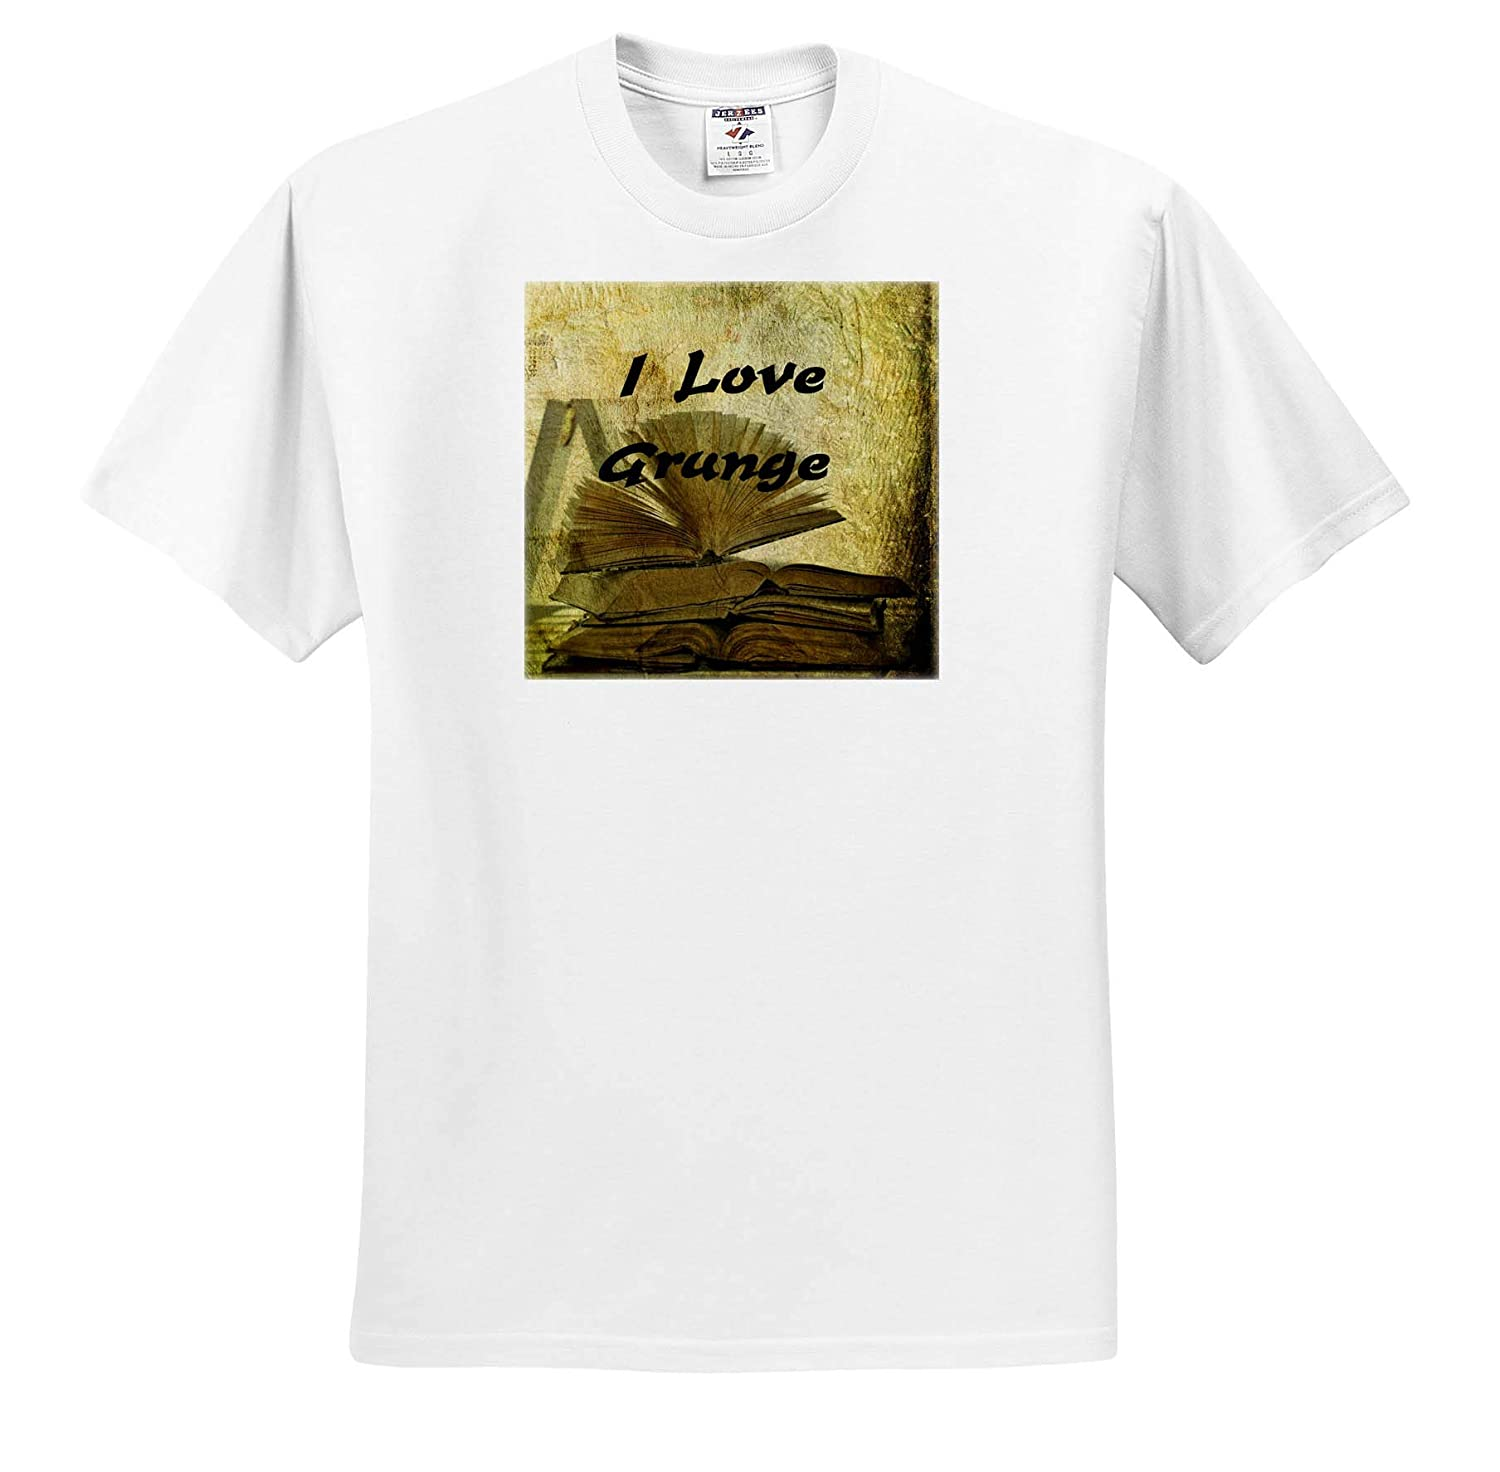 I Love Books ts/_312620 3dRose Lens Art by Florene Adult T-Shirt XL Image of I Love Grunge On Pile of Grungy Books